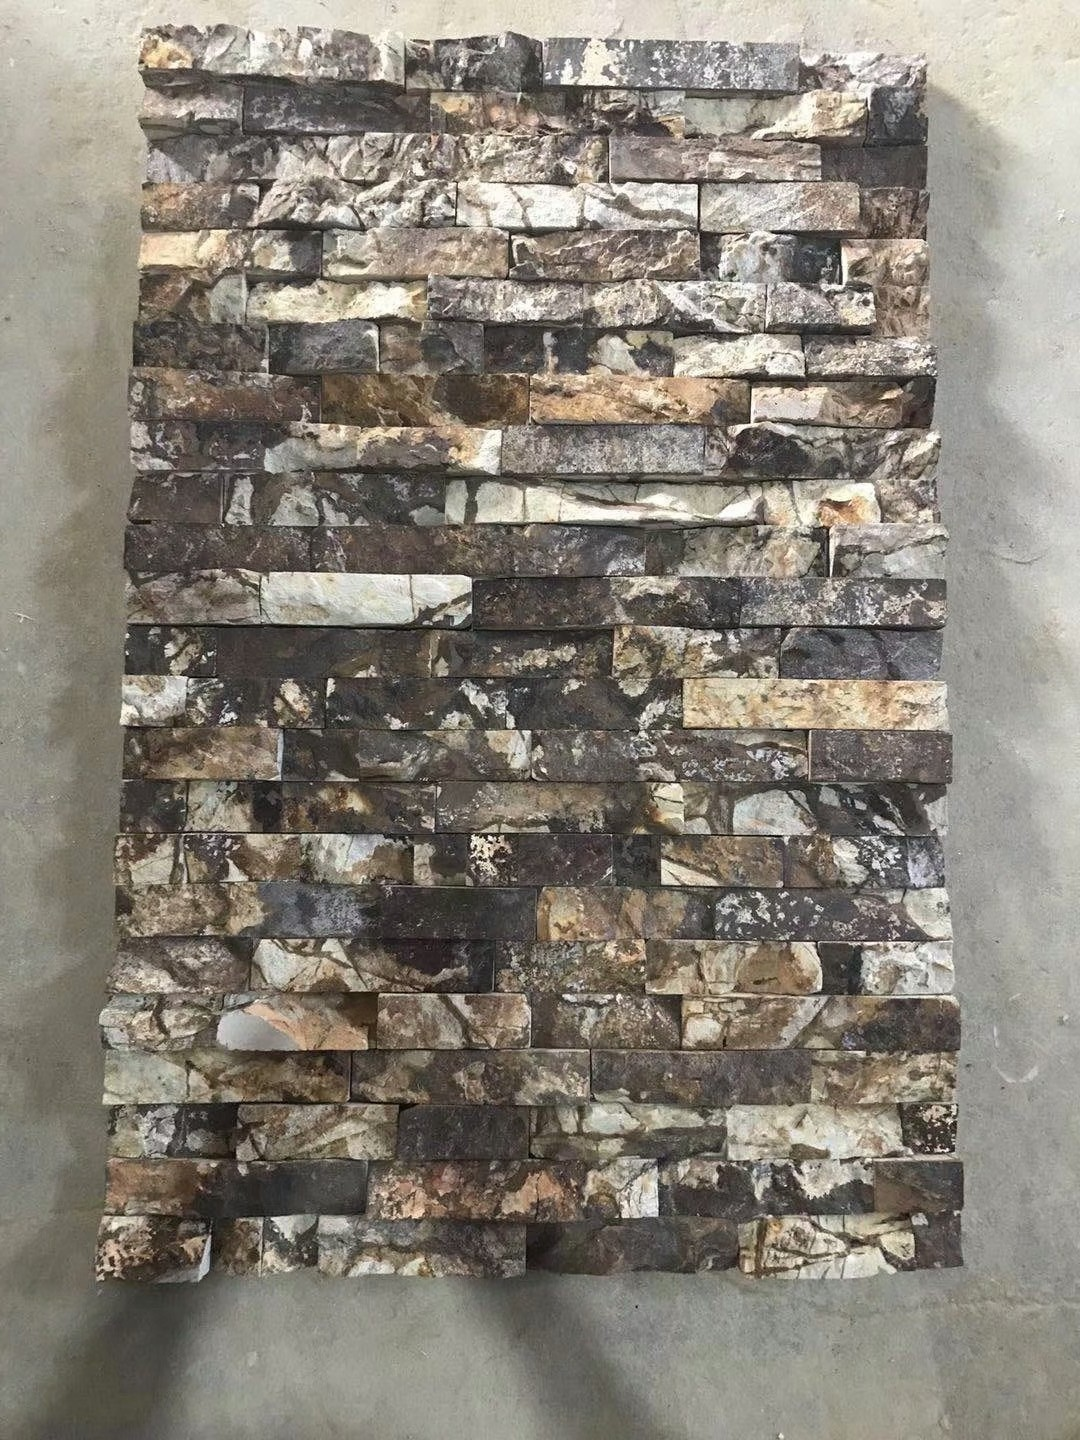 Rough Surface Lilac Cultured Stone Veneer Wall Clad Decor Stacked Glue